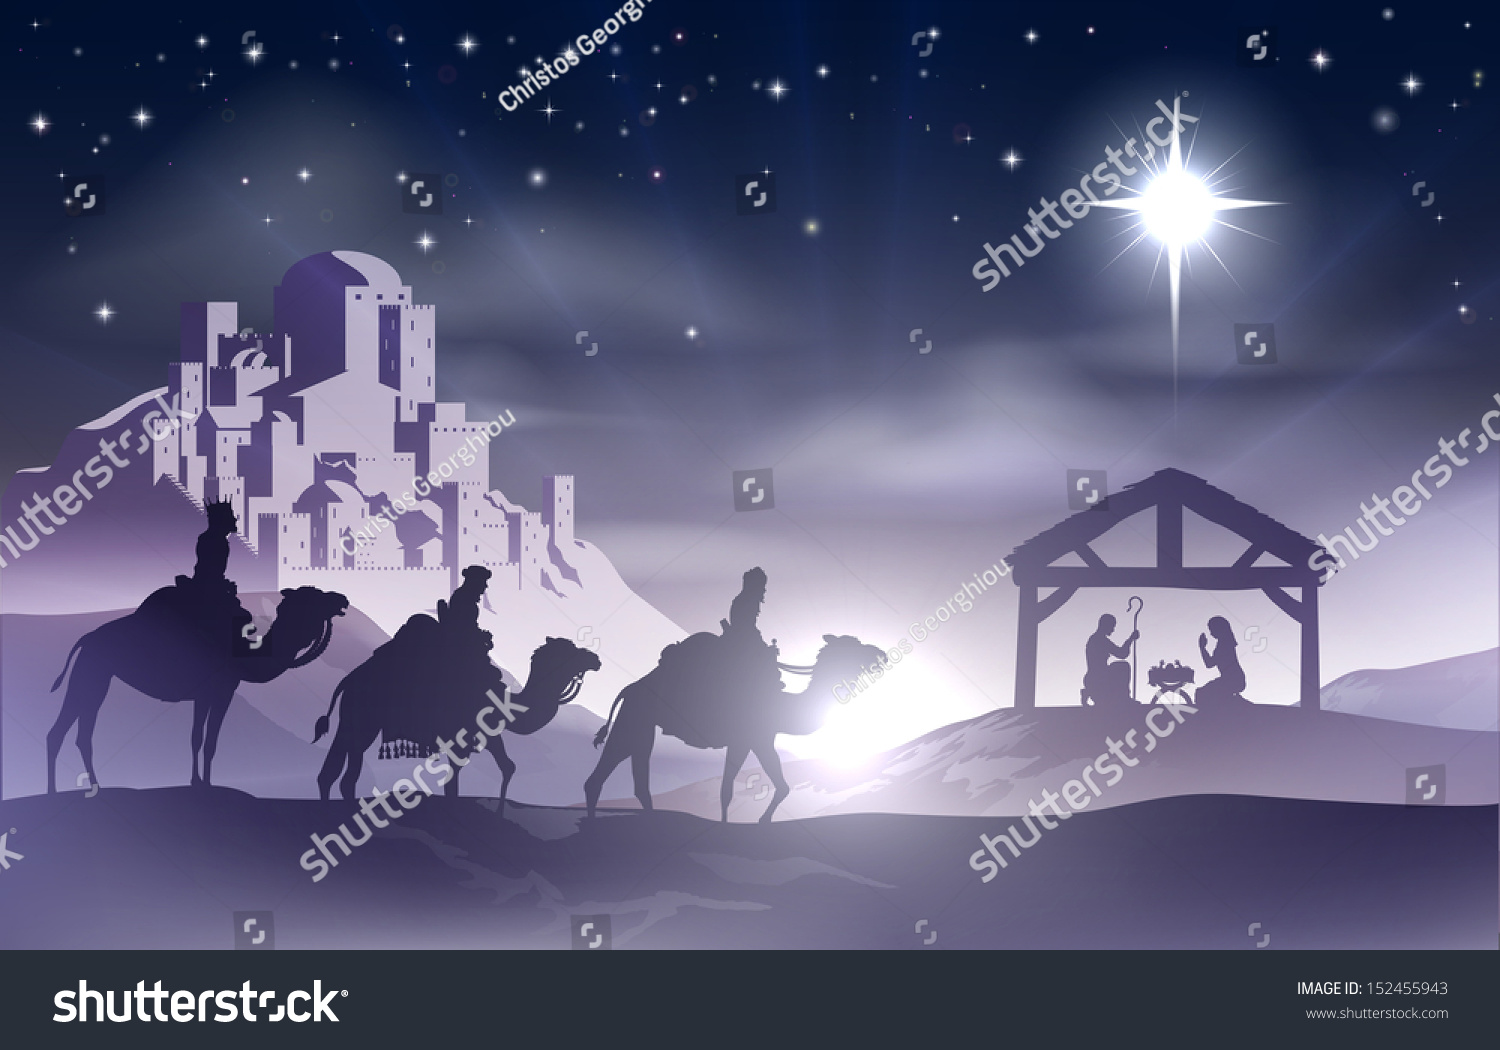 Christmas Christian Nativity Scene Baby Jesus Stock Illustration ...